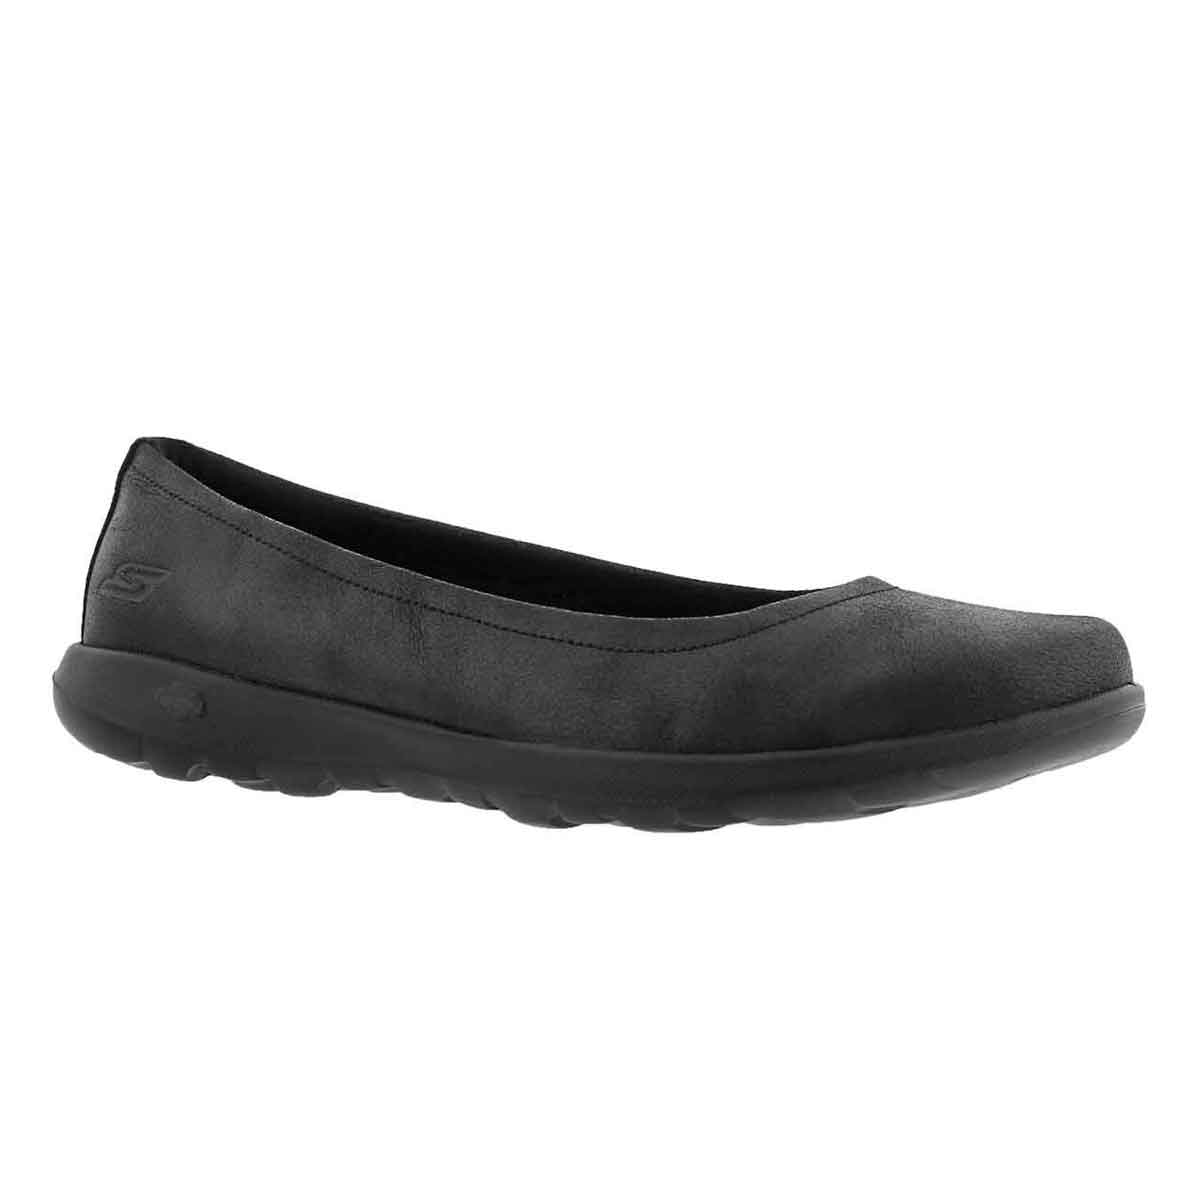 Lds GOWalk Lite Gem black flat